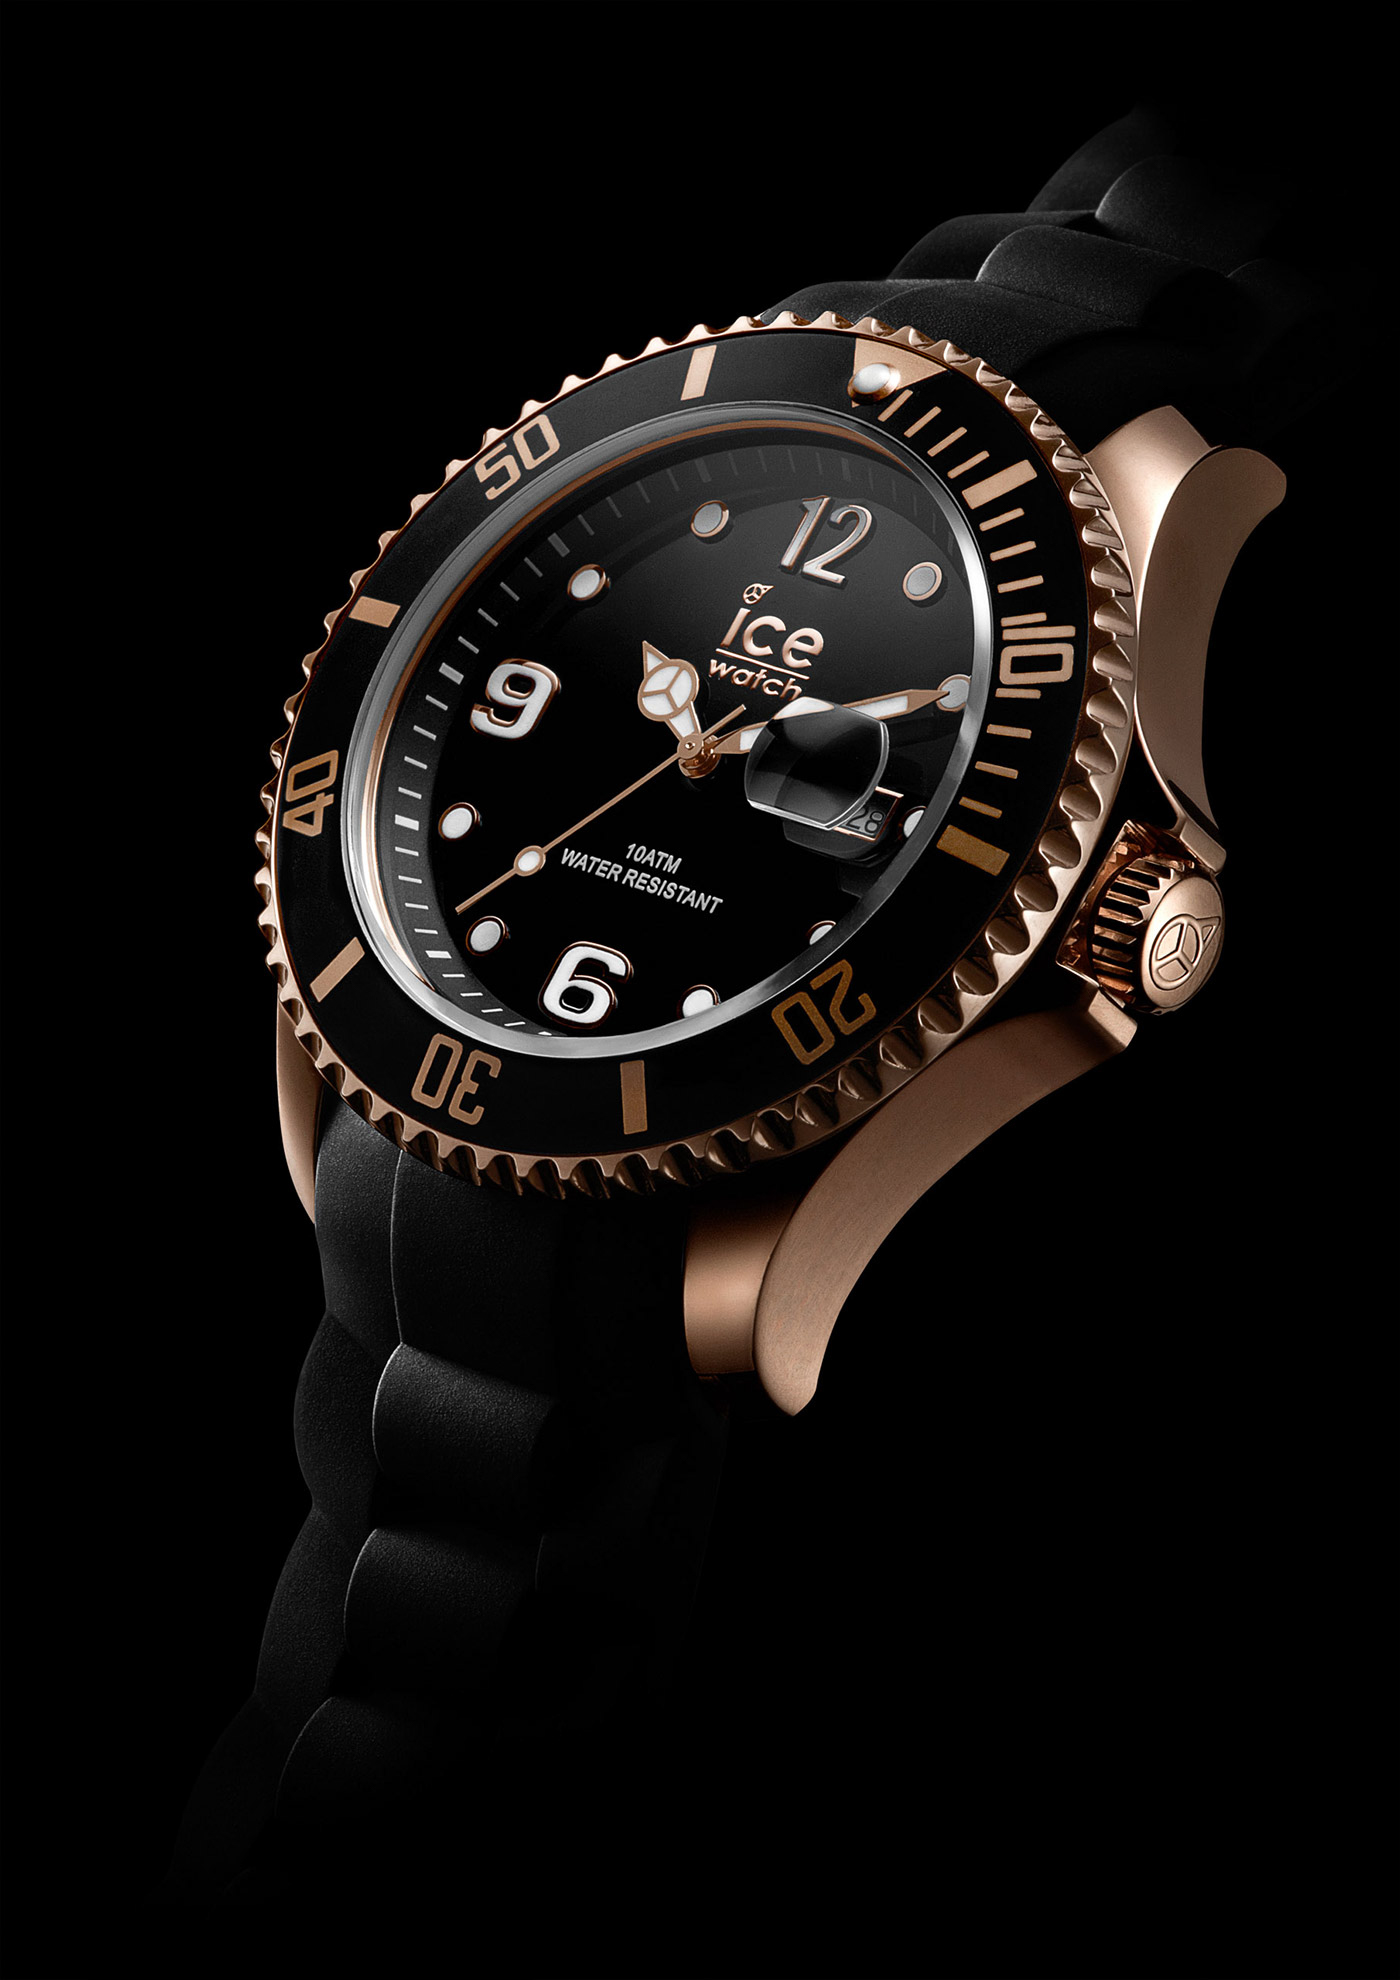 montres watches ice watch 10 atm water resistant black